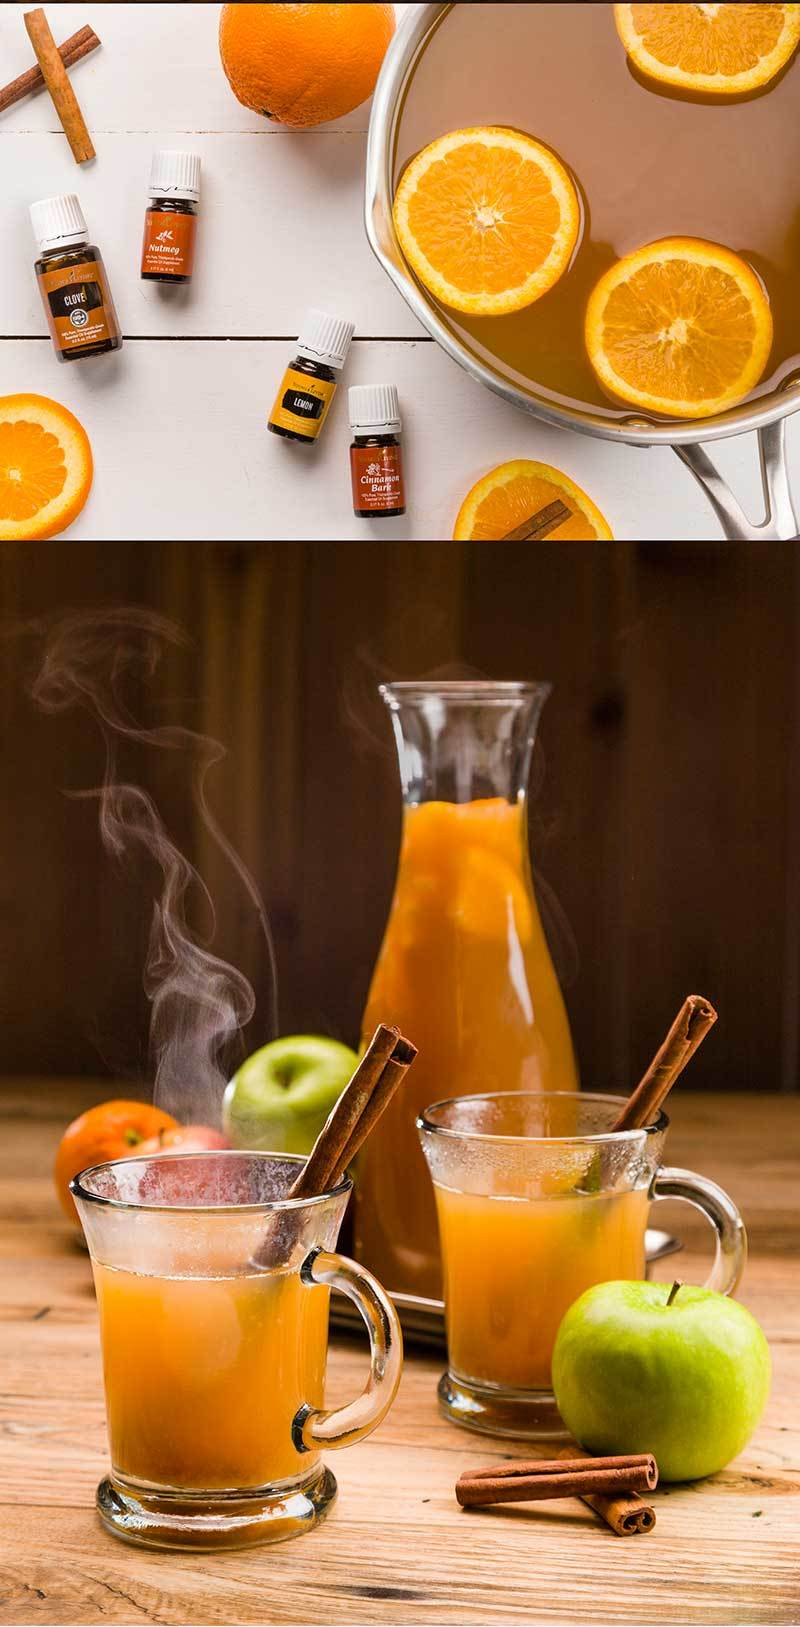 Apple cider recipe with essential oils. Join Young Living and learn more at http://www.enjoylifeoils.com